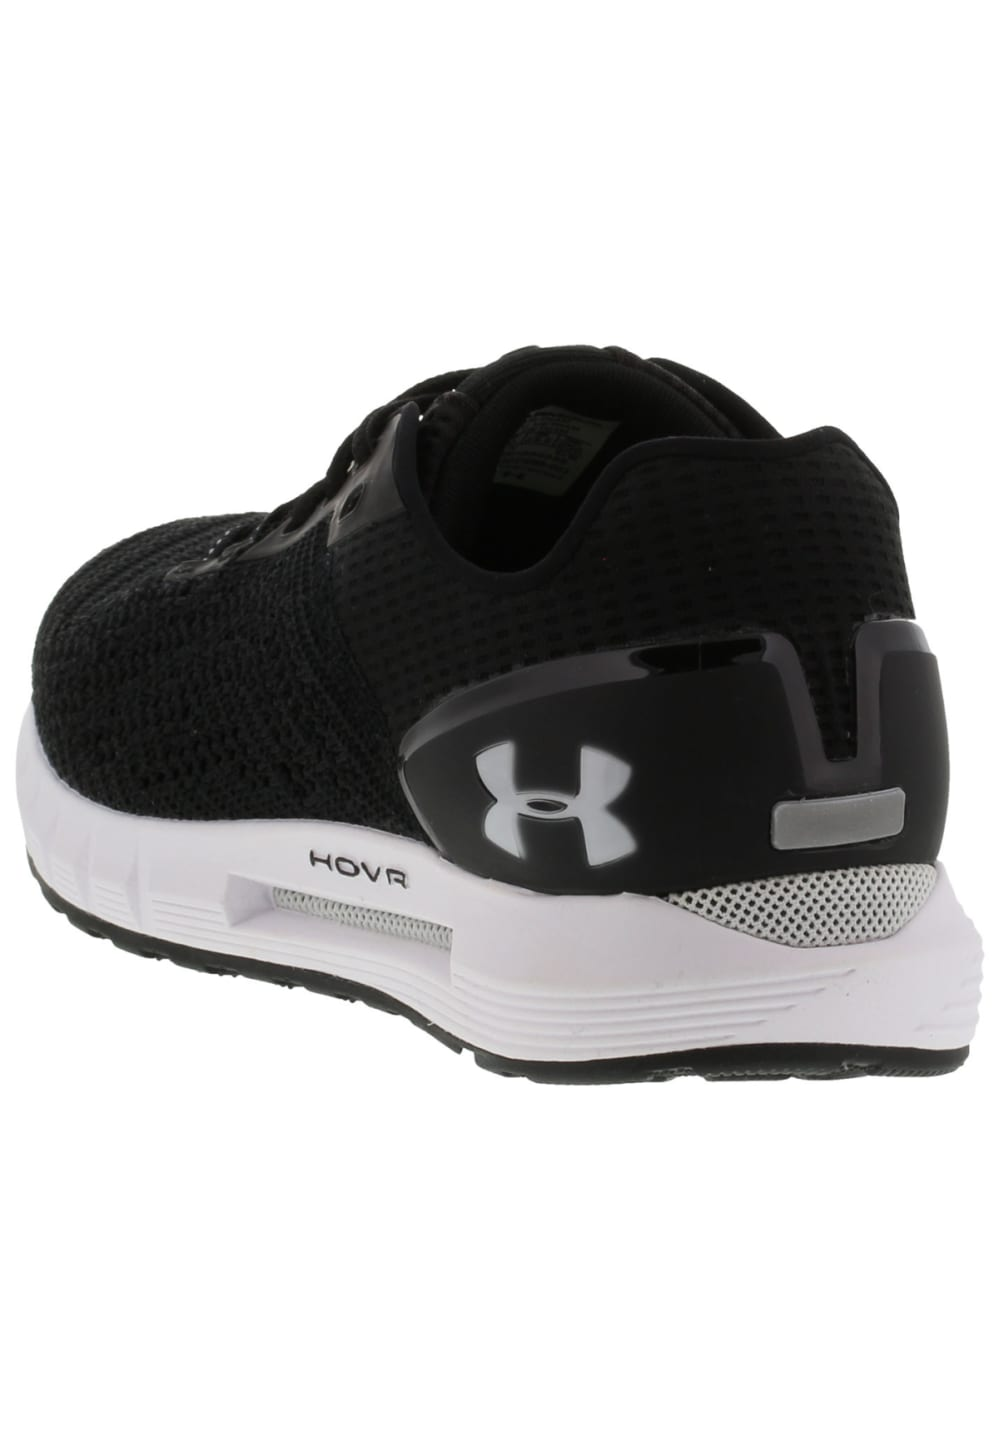 promo code 2c4d2 fabdd Under Armour Hovr Sonic 2 - Running shoes for Women - Black